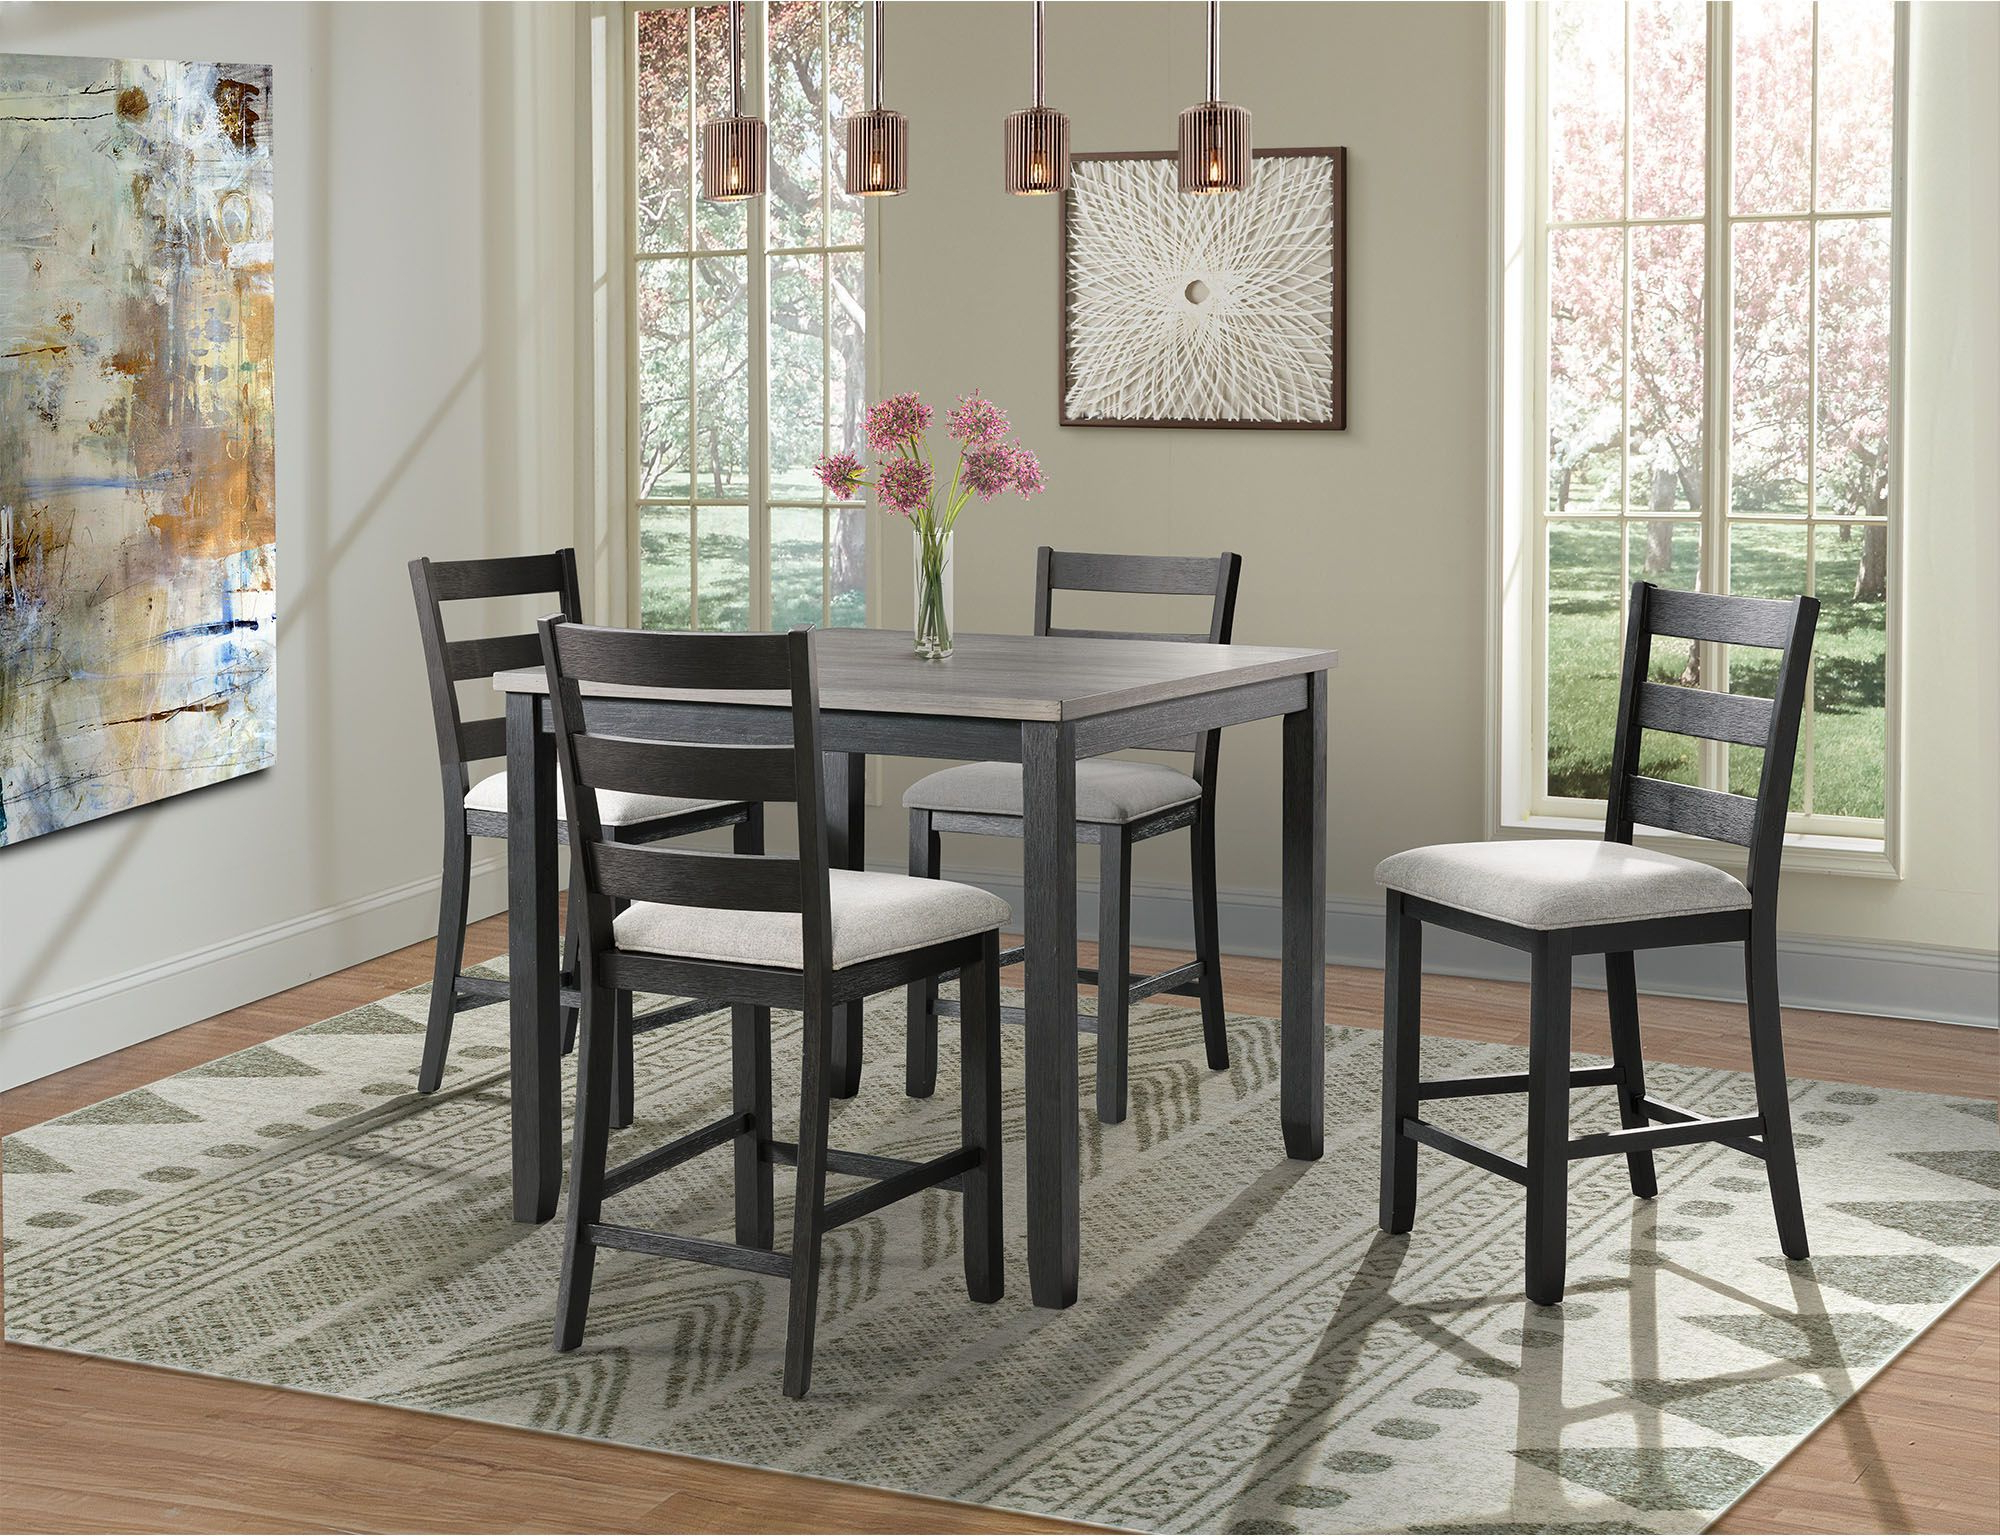 Kinsler 3 Piece Bistro Sets Regarding Newest Kona Gray And Black 5 Piece Counter Height Dining Room Set From (Gallery 21 of 25)